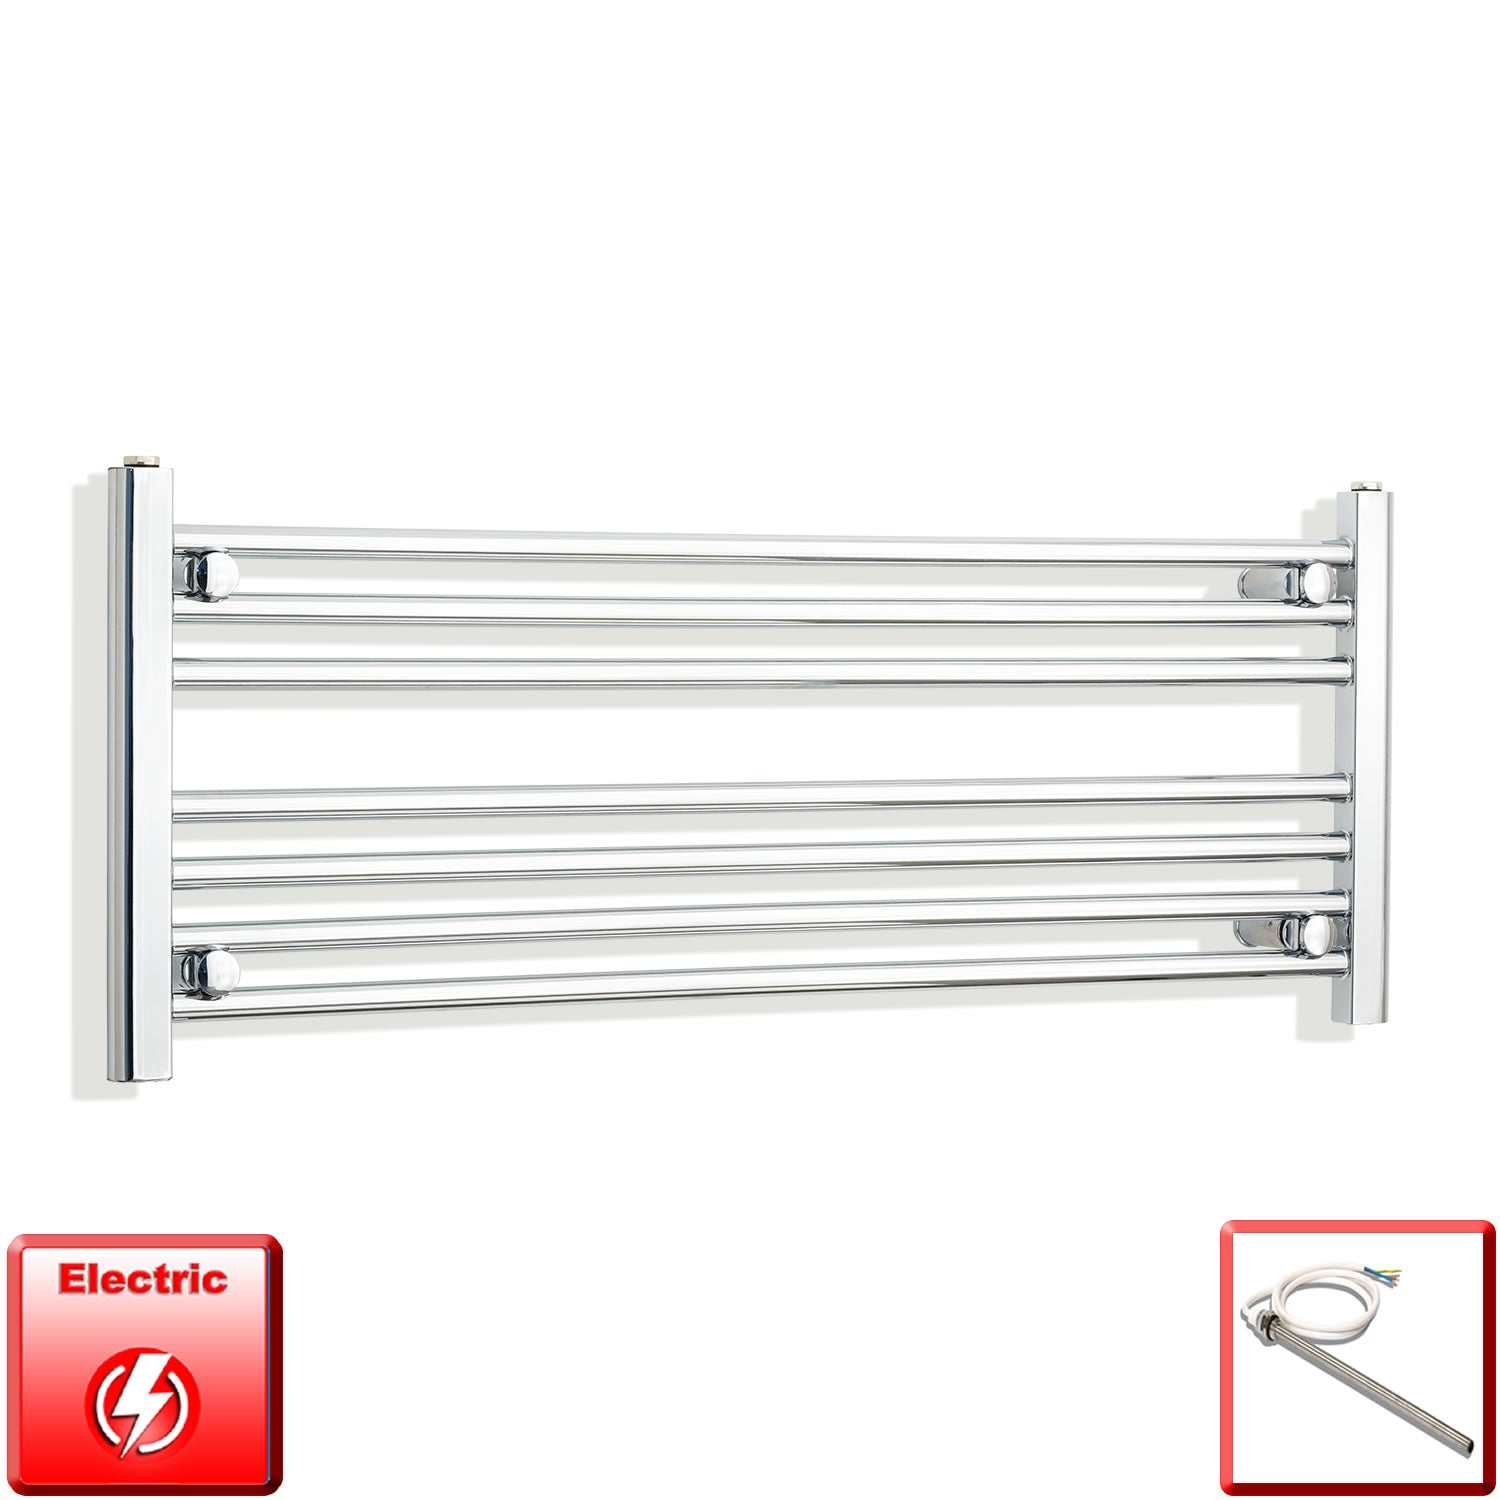 1200mm Wide 400mm High Flat Chrome Pre-Filled Electric Heated Towel Rail Radiator HTR,Single Heat Element